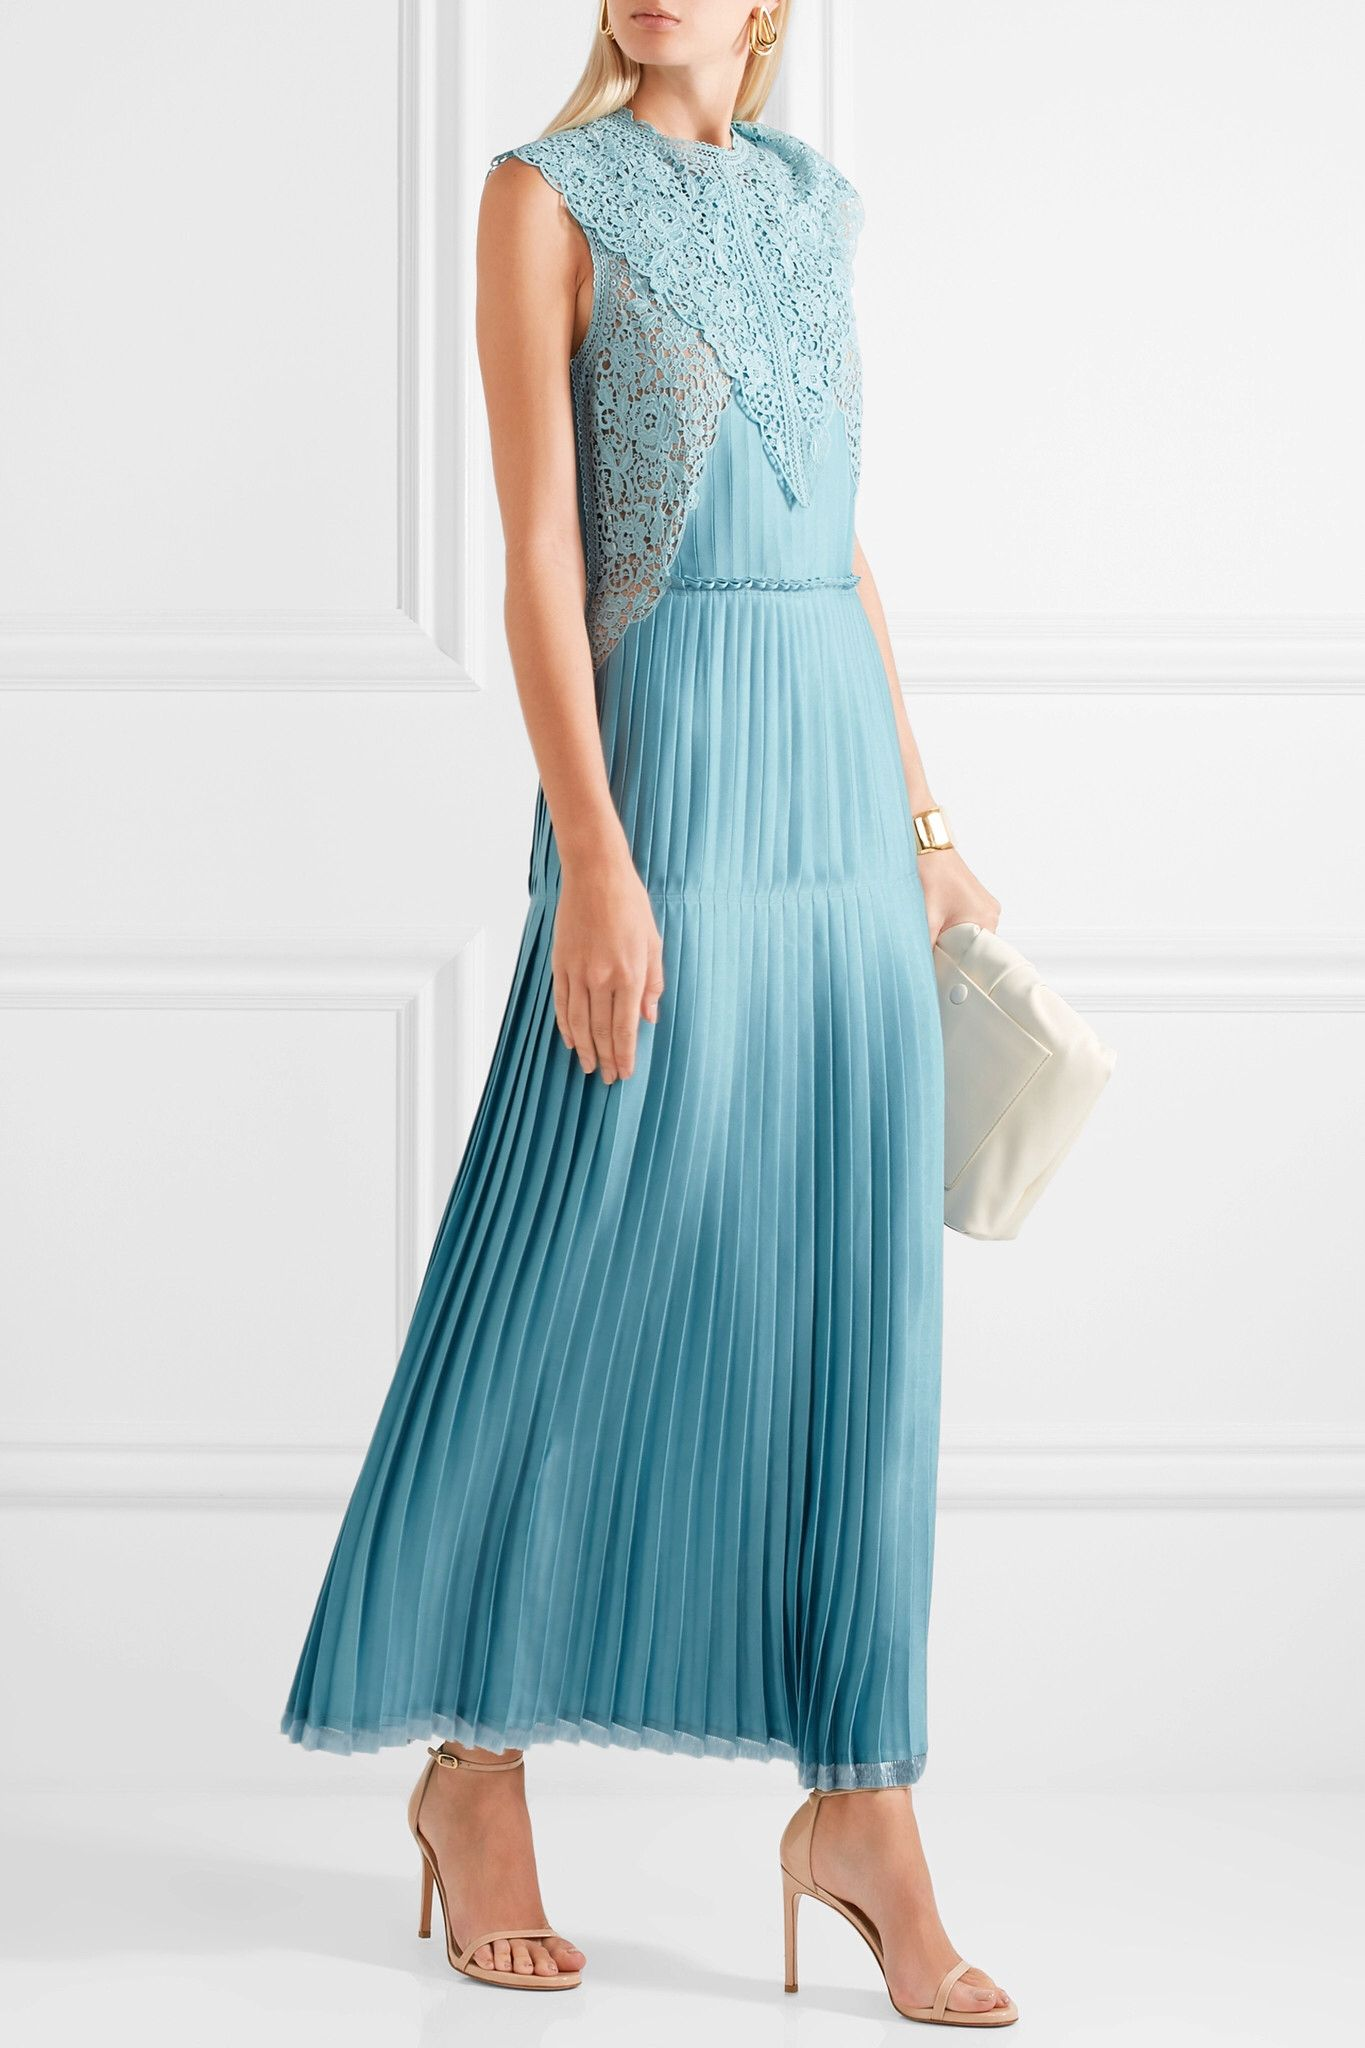 Pin by Maria Jimenez on Evening Gowns | Pinterest | Amazing dresses ...